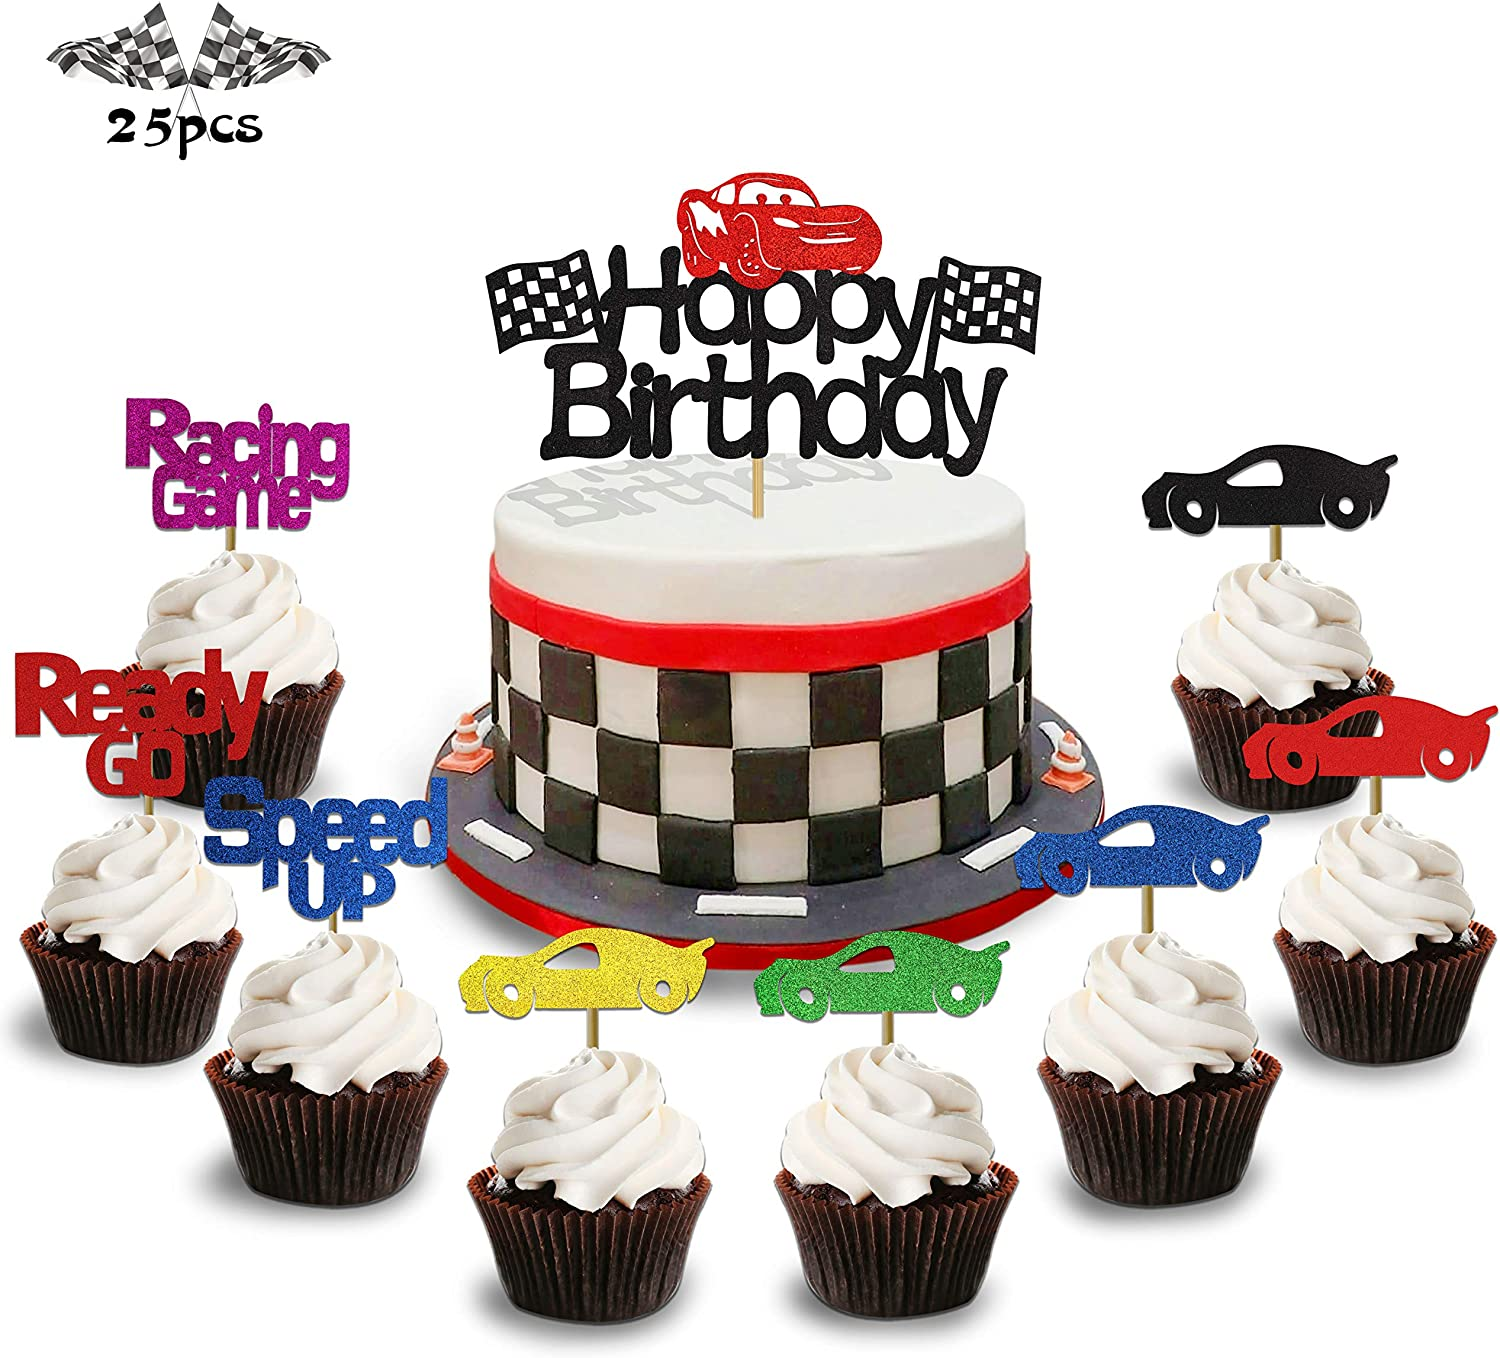 Stupendous Amazon Com Kapokku Set Of 25 Racing Car Glitter Cake Cupcake Funny Birthday Cards Online Alyptdamsfinfo